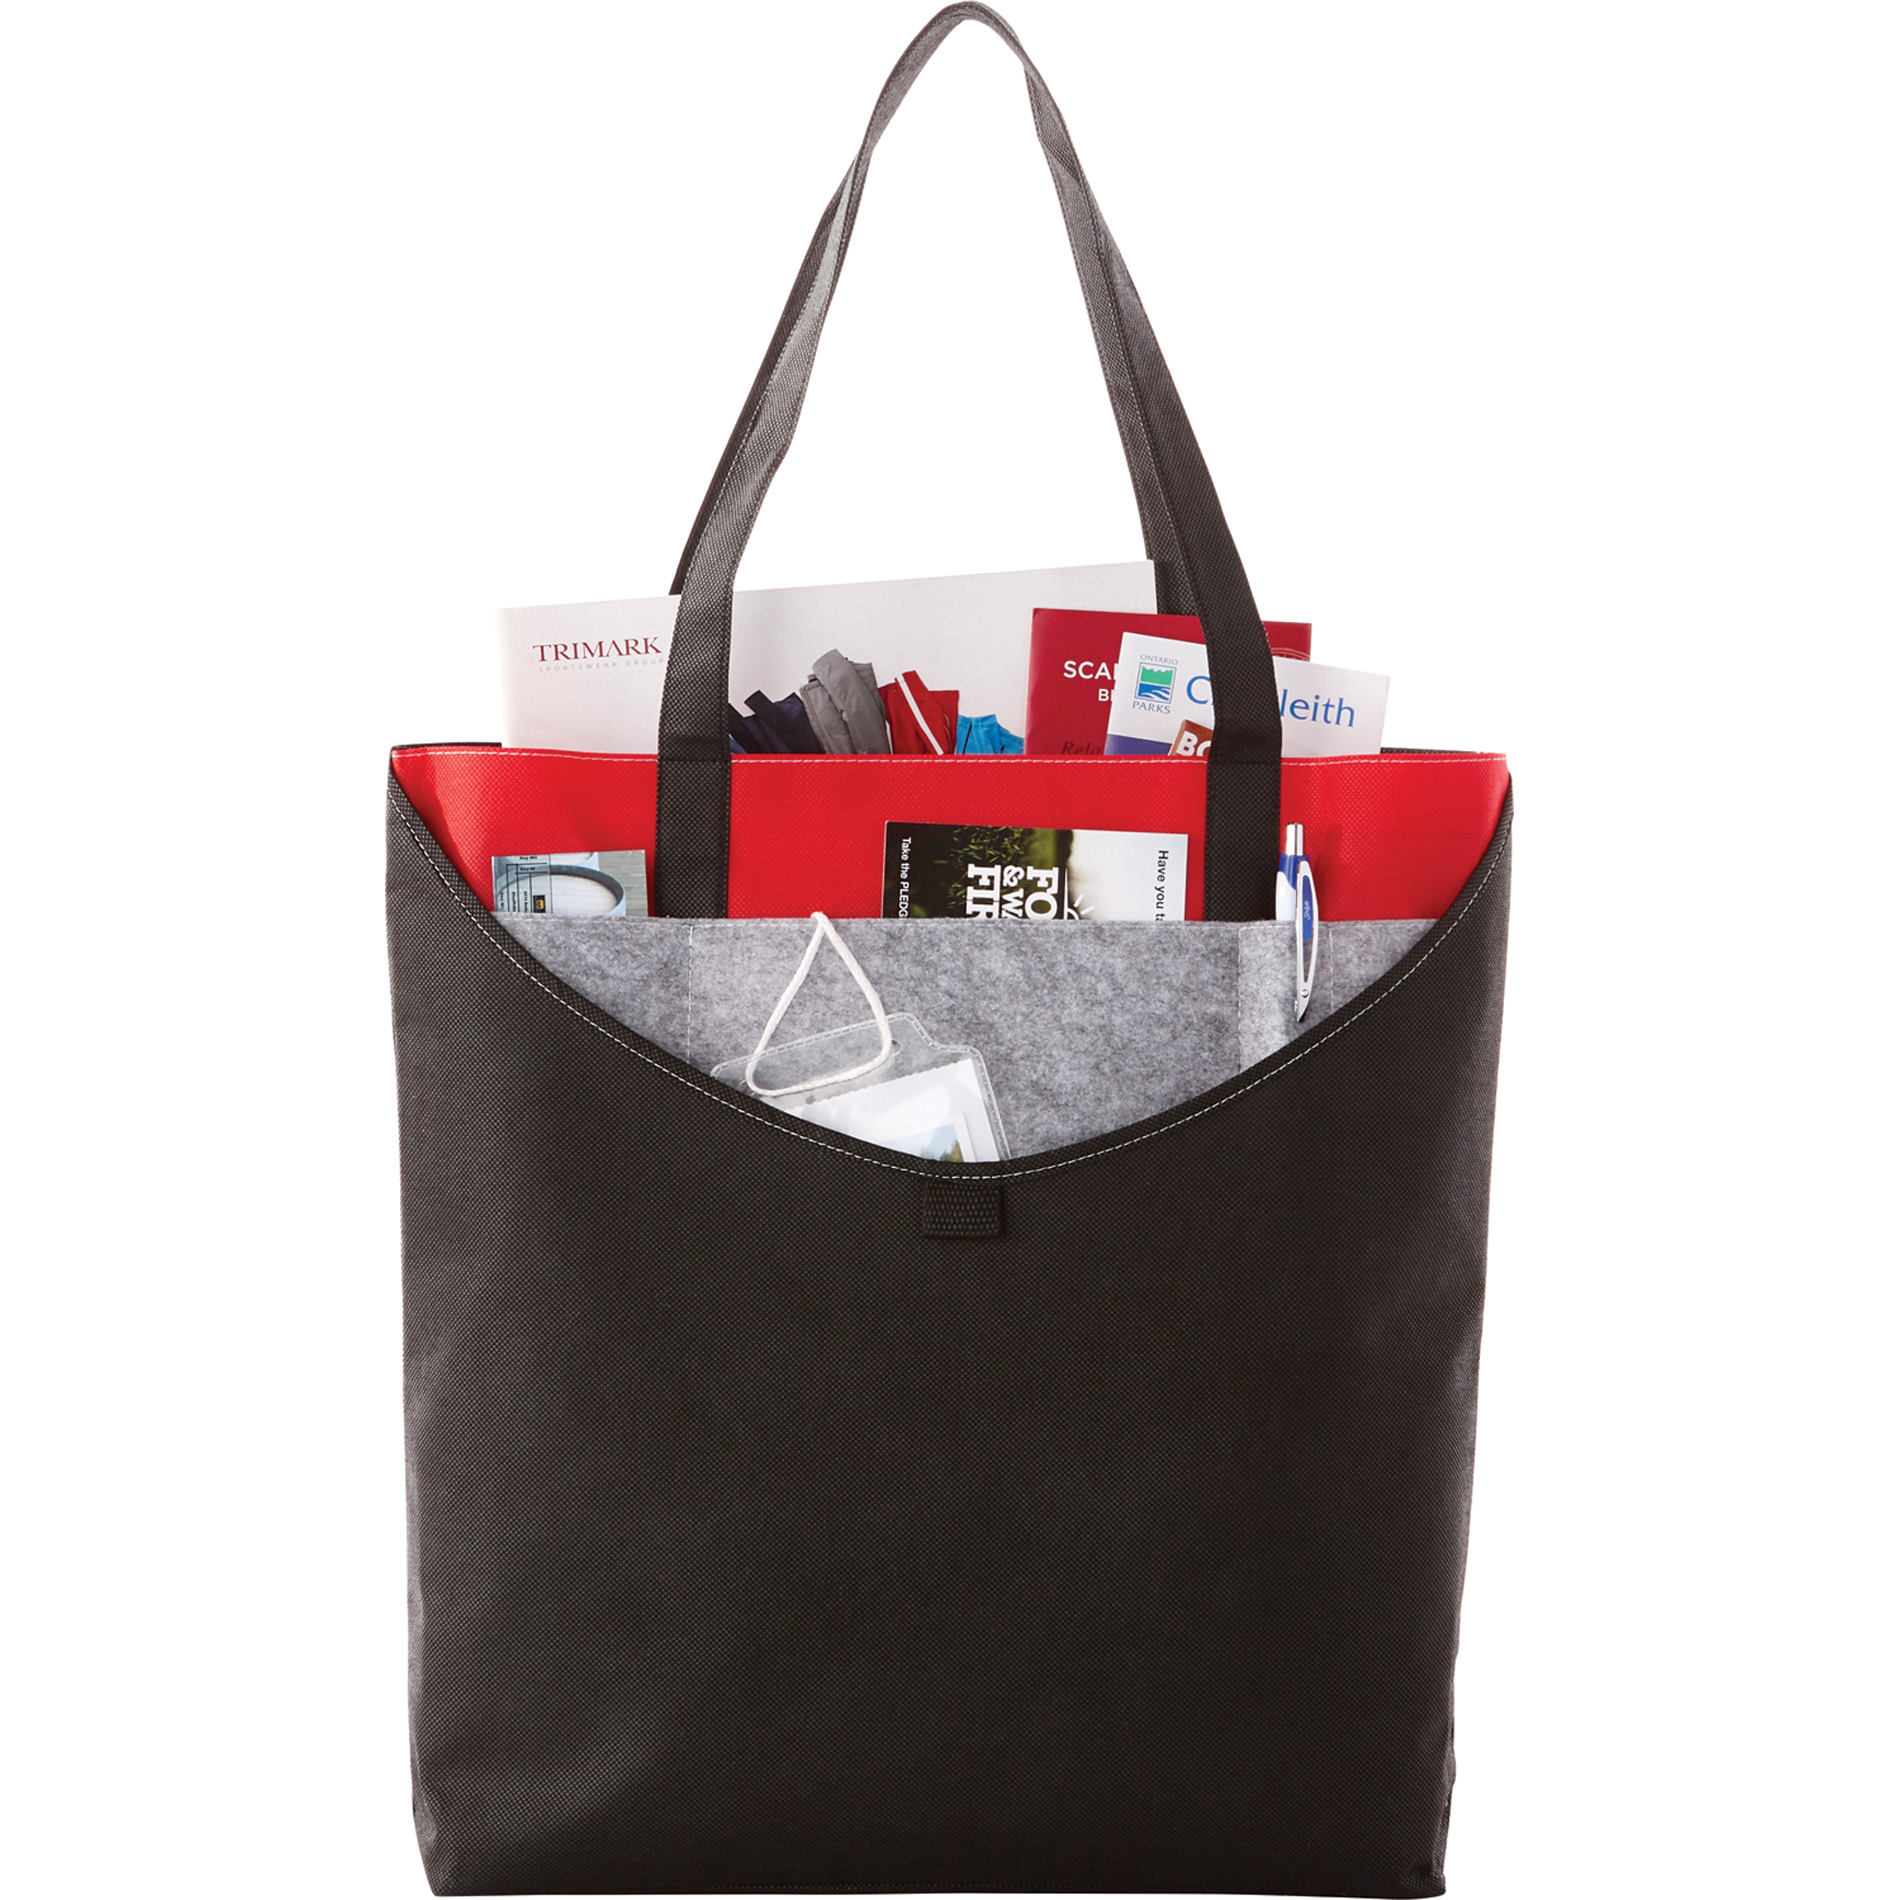 LEEDS 2150-18 - Layer Pocket Non-Woven Convention Tote